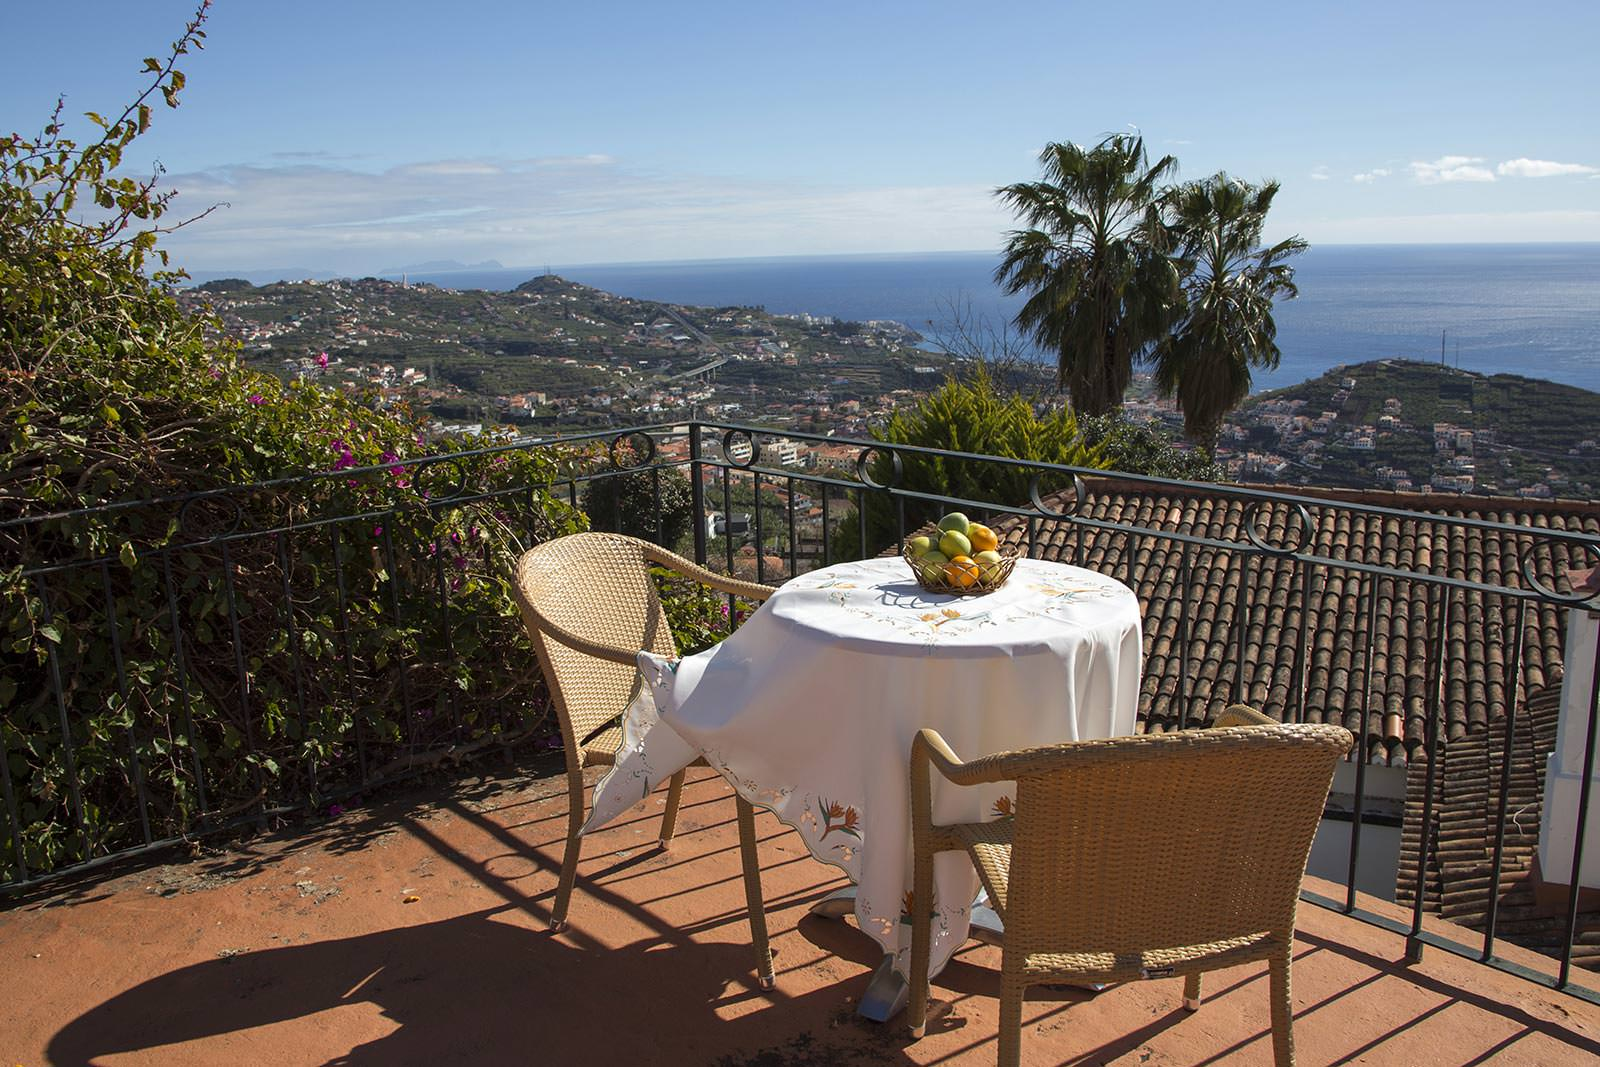 Breakfast with style at Villa Afonso